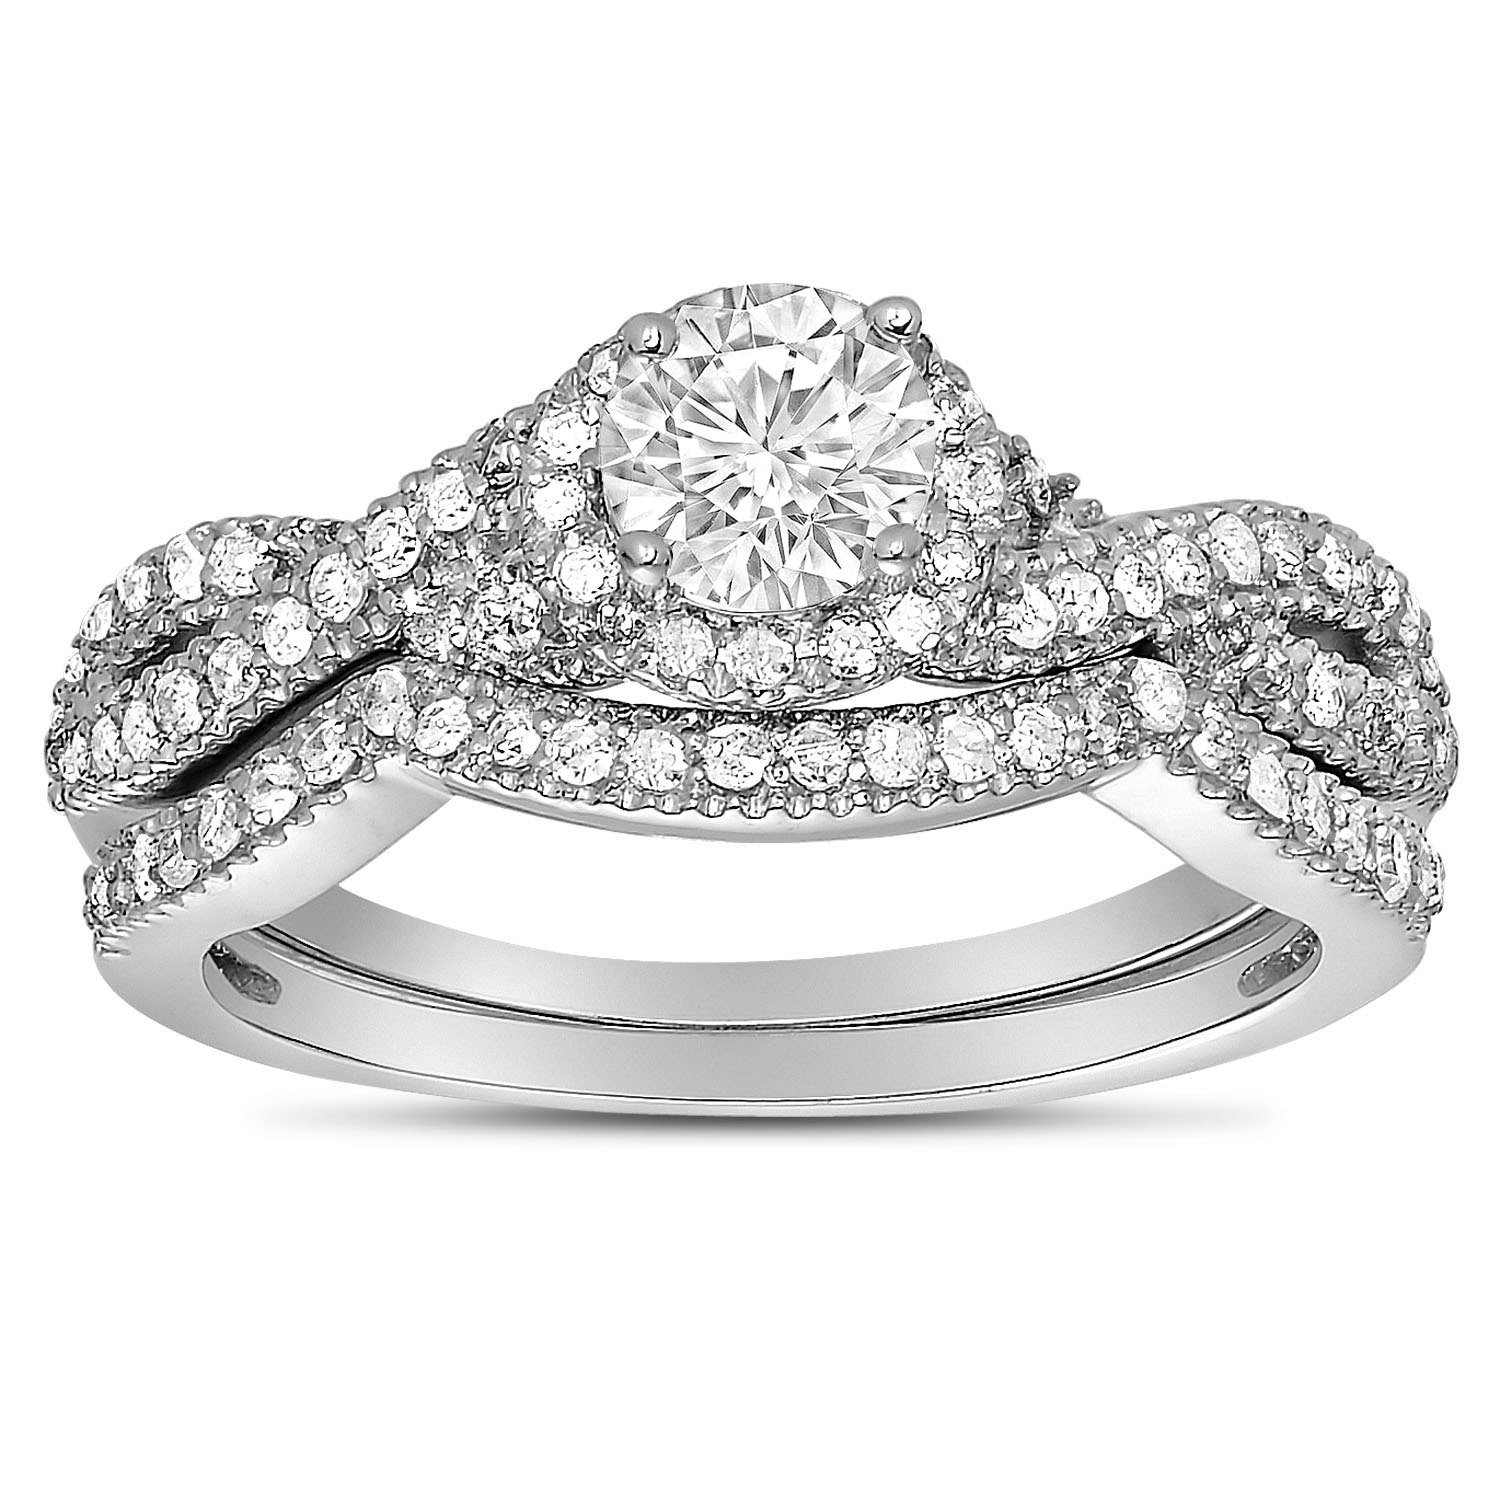 2 carat round diamond infinity wedding ring set in white gold for her - Wedding Rings For Her